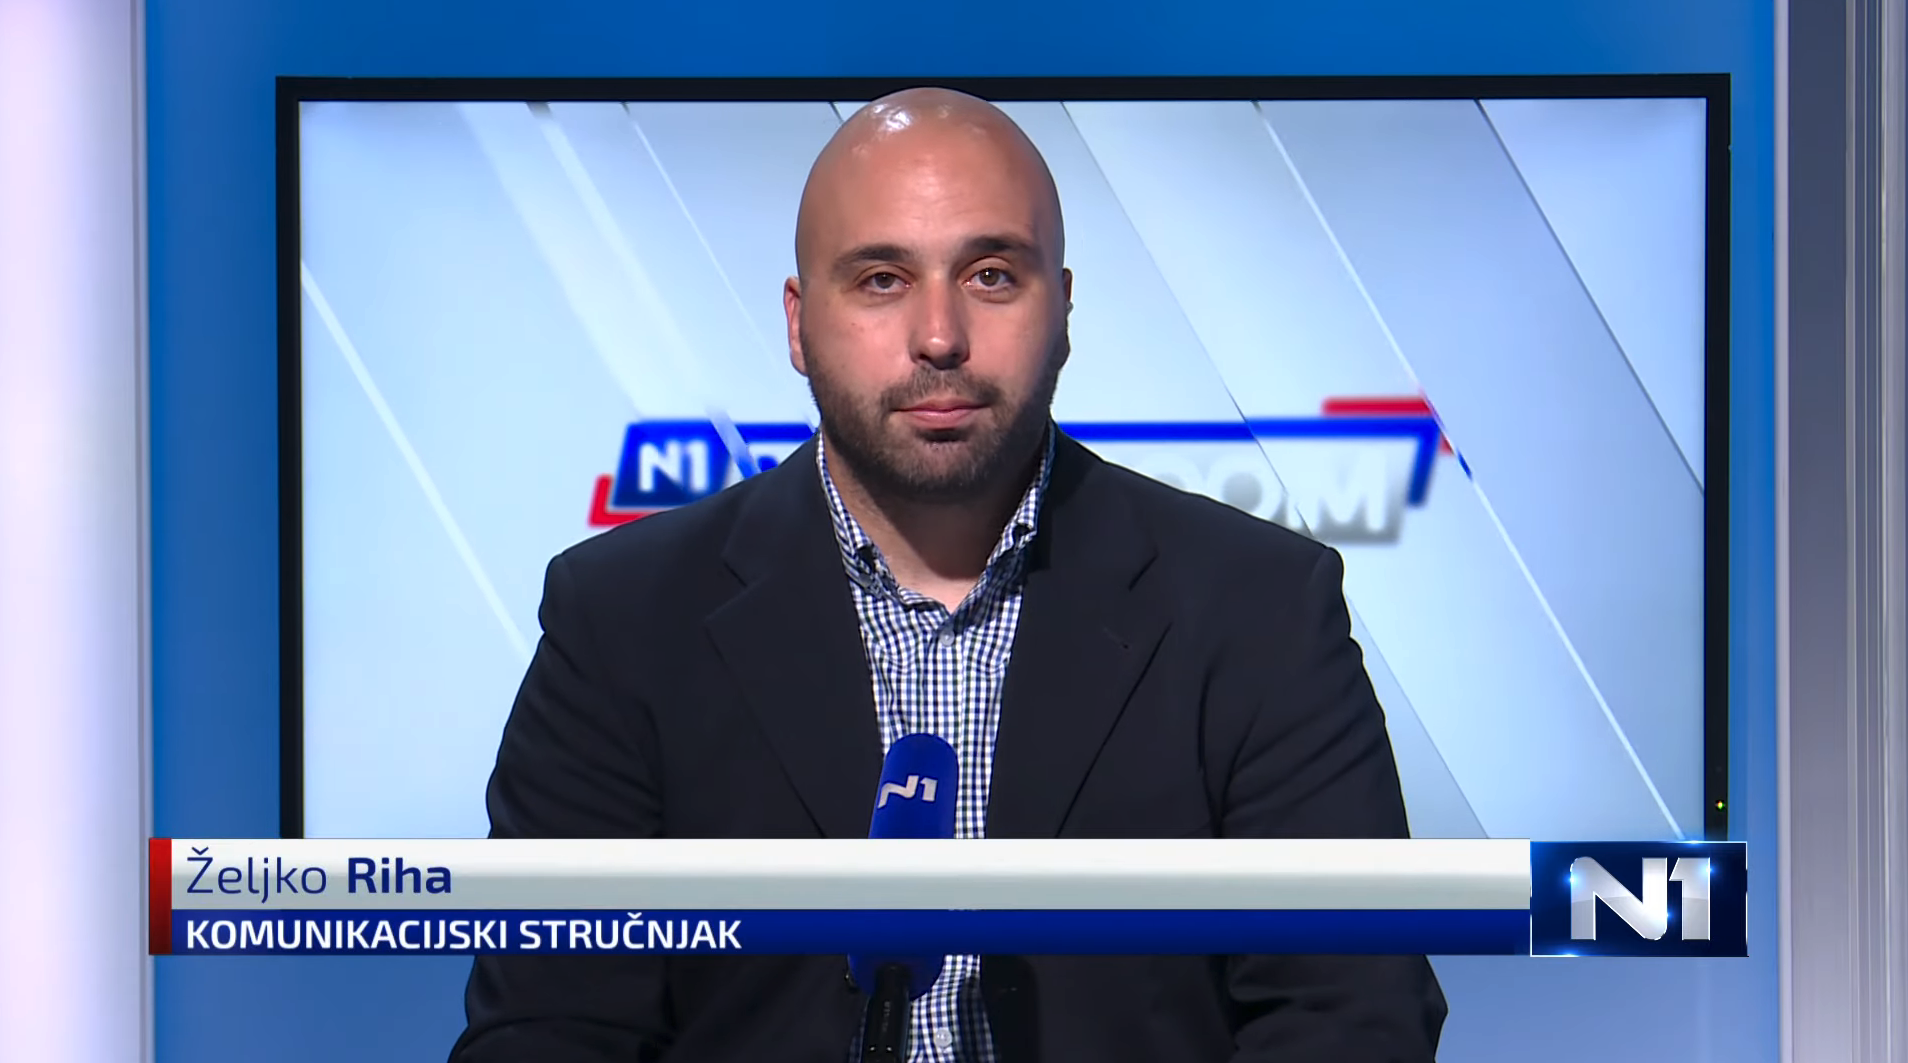 Zeljko Riha on N1 Television